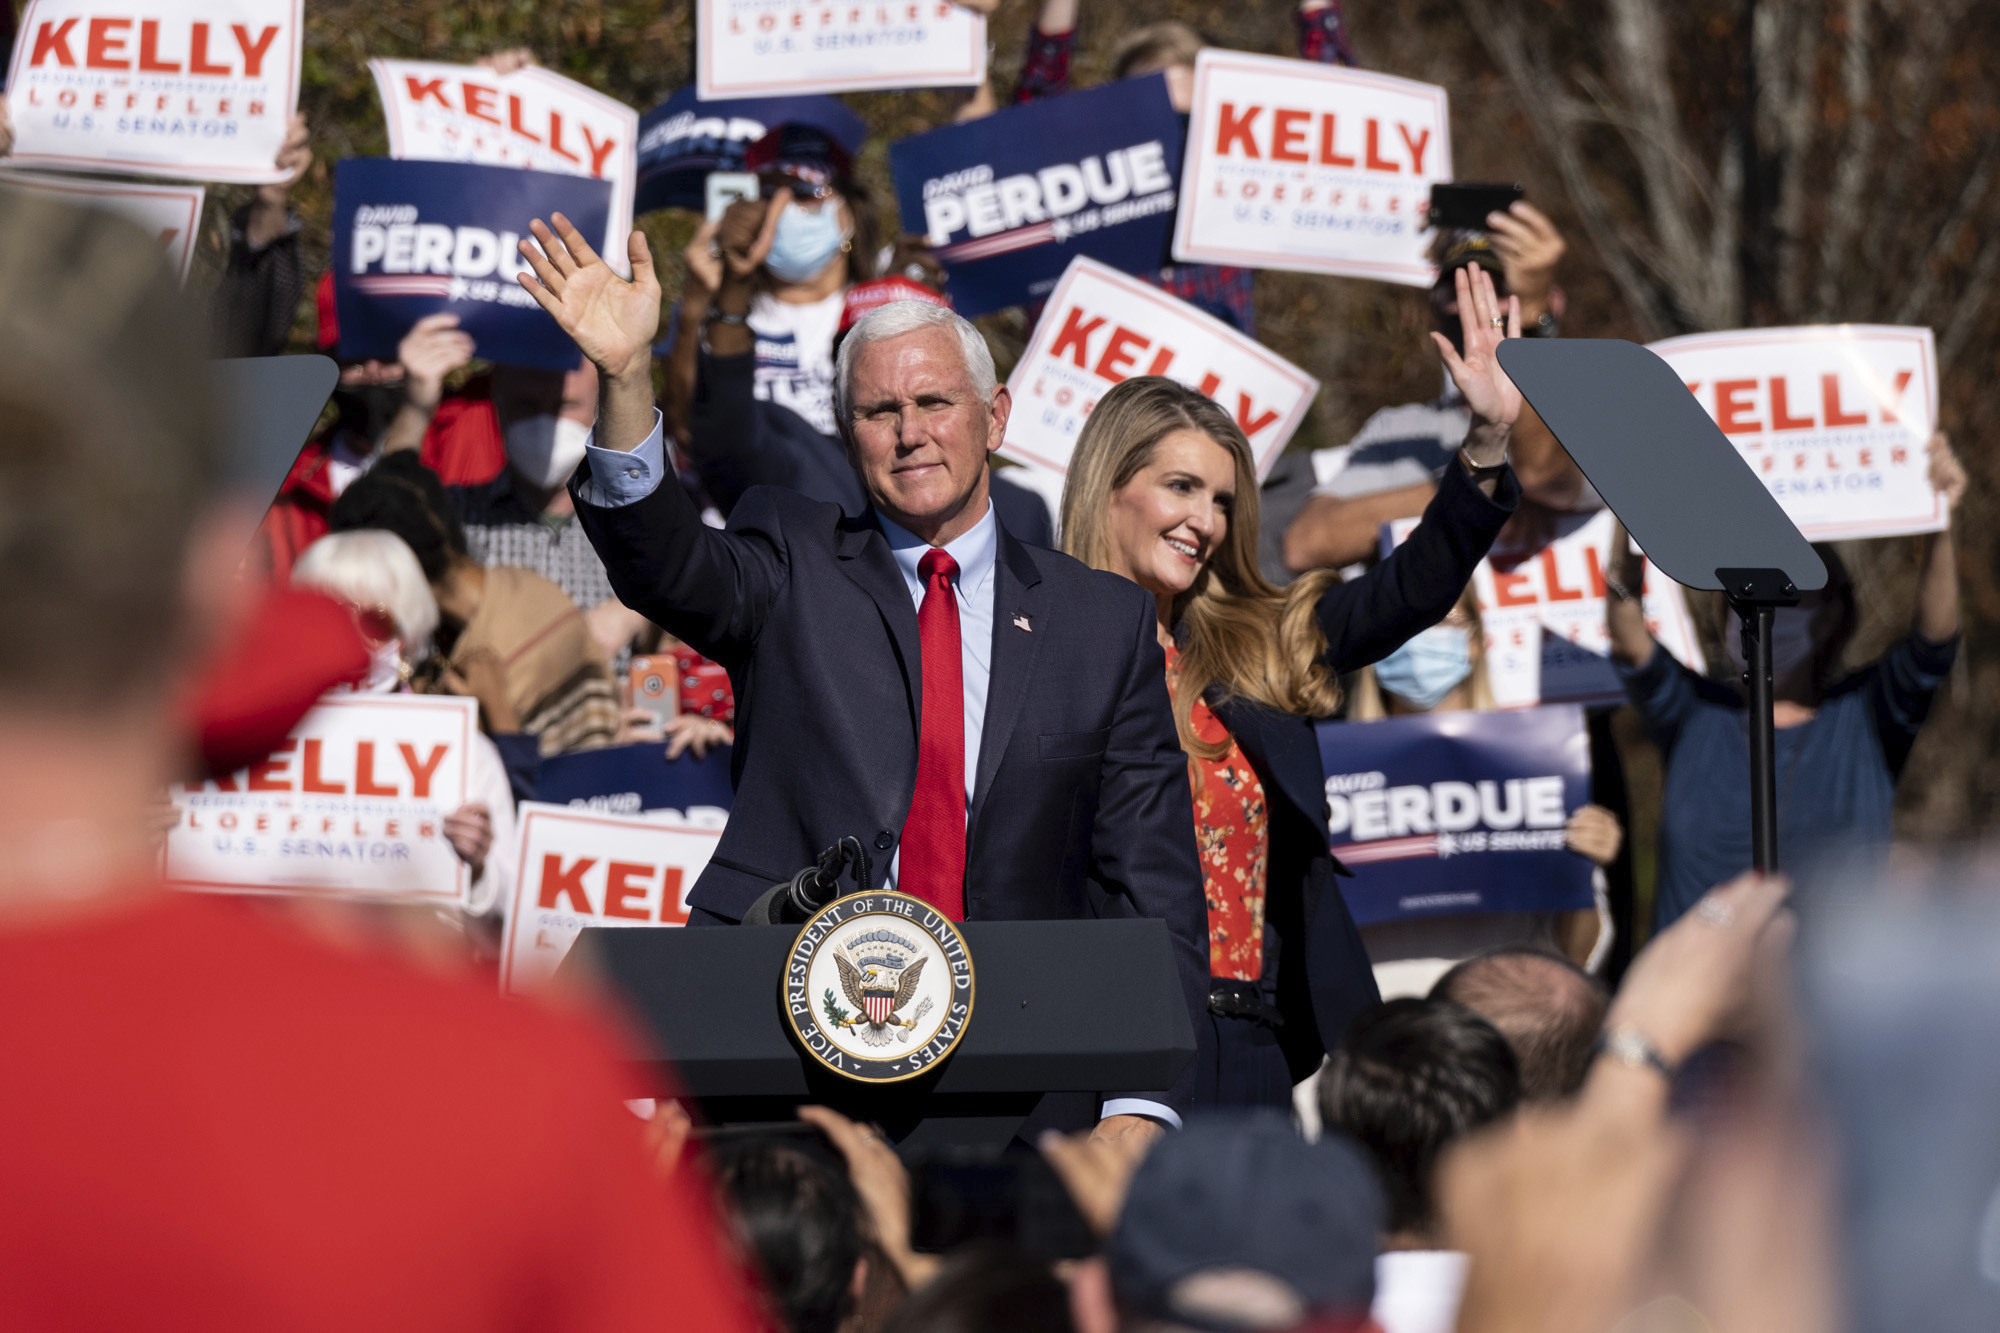 Vice President Mike Pence and Sen. Kelly Loeffler wave to the crowd during a campaign rally in Canton, Georgia, on November 20.